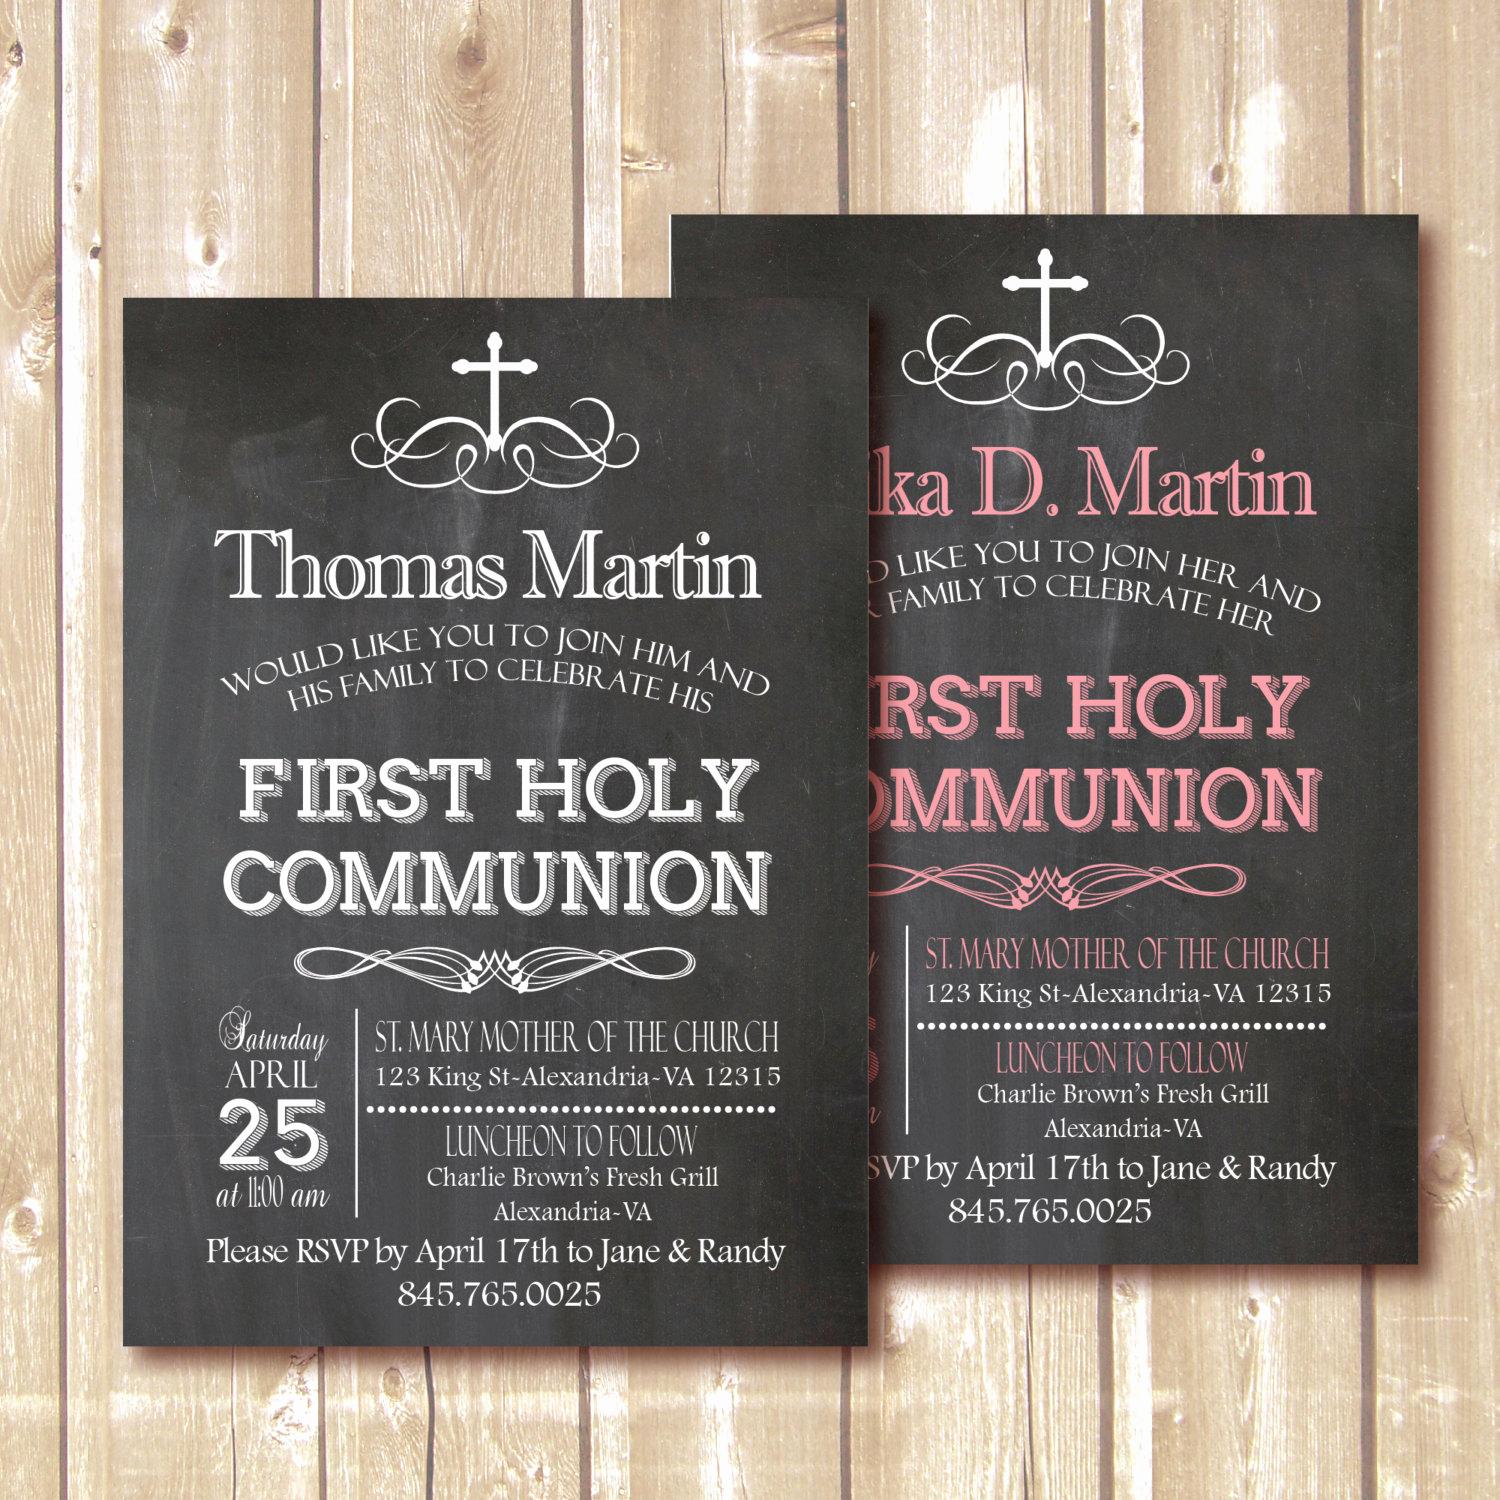 First Holy Communion Invitation Wordings Elegant Chalkboard Invitation First Munion Invitation by Pipetua